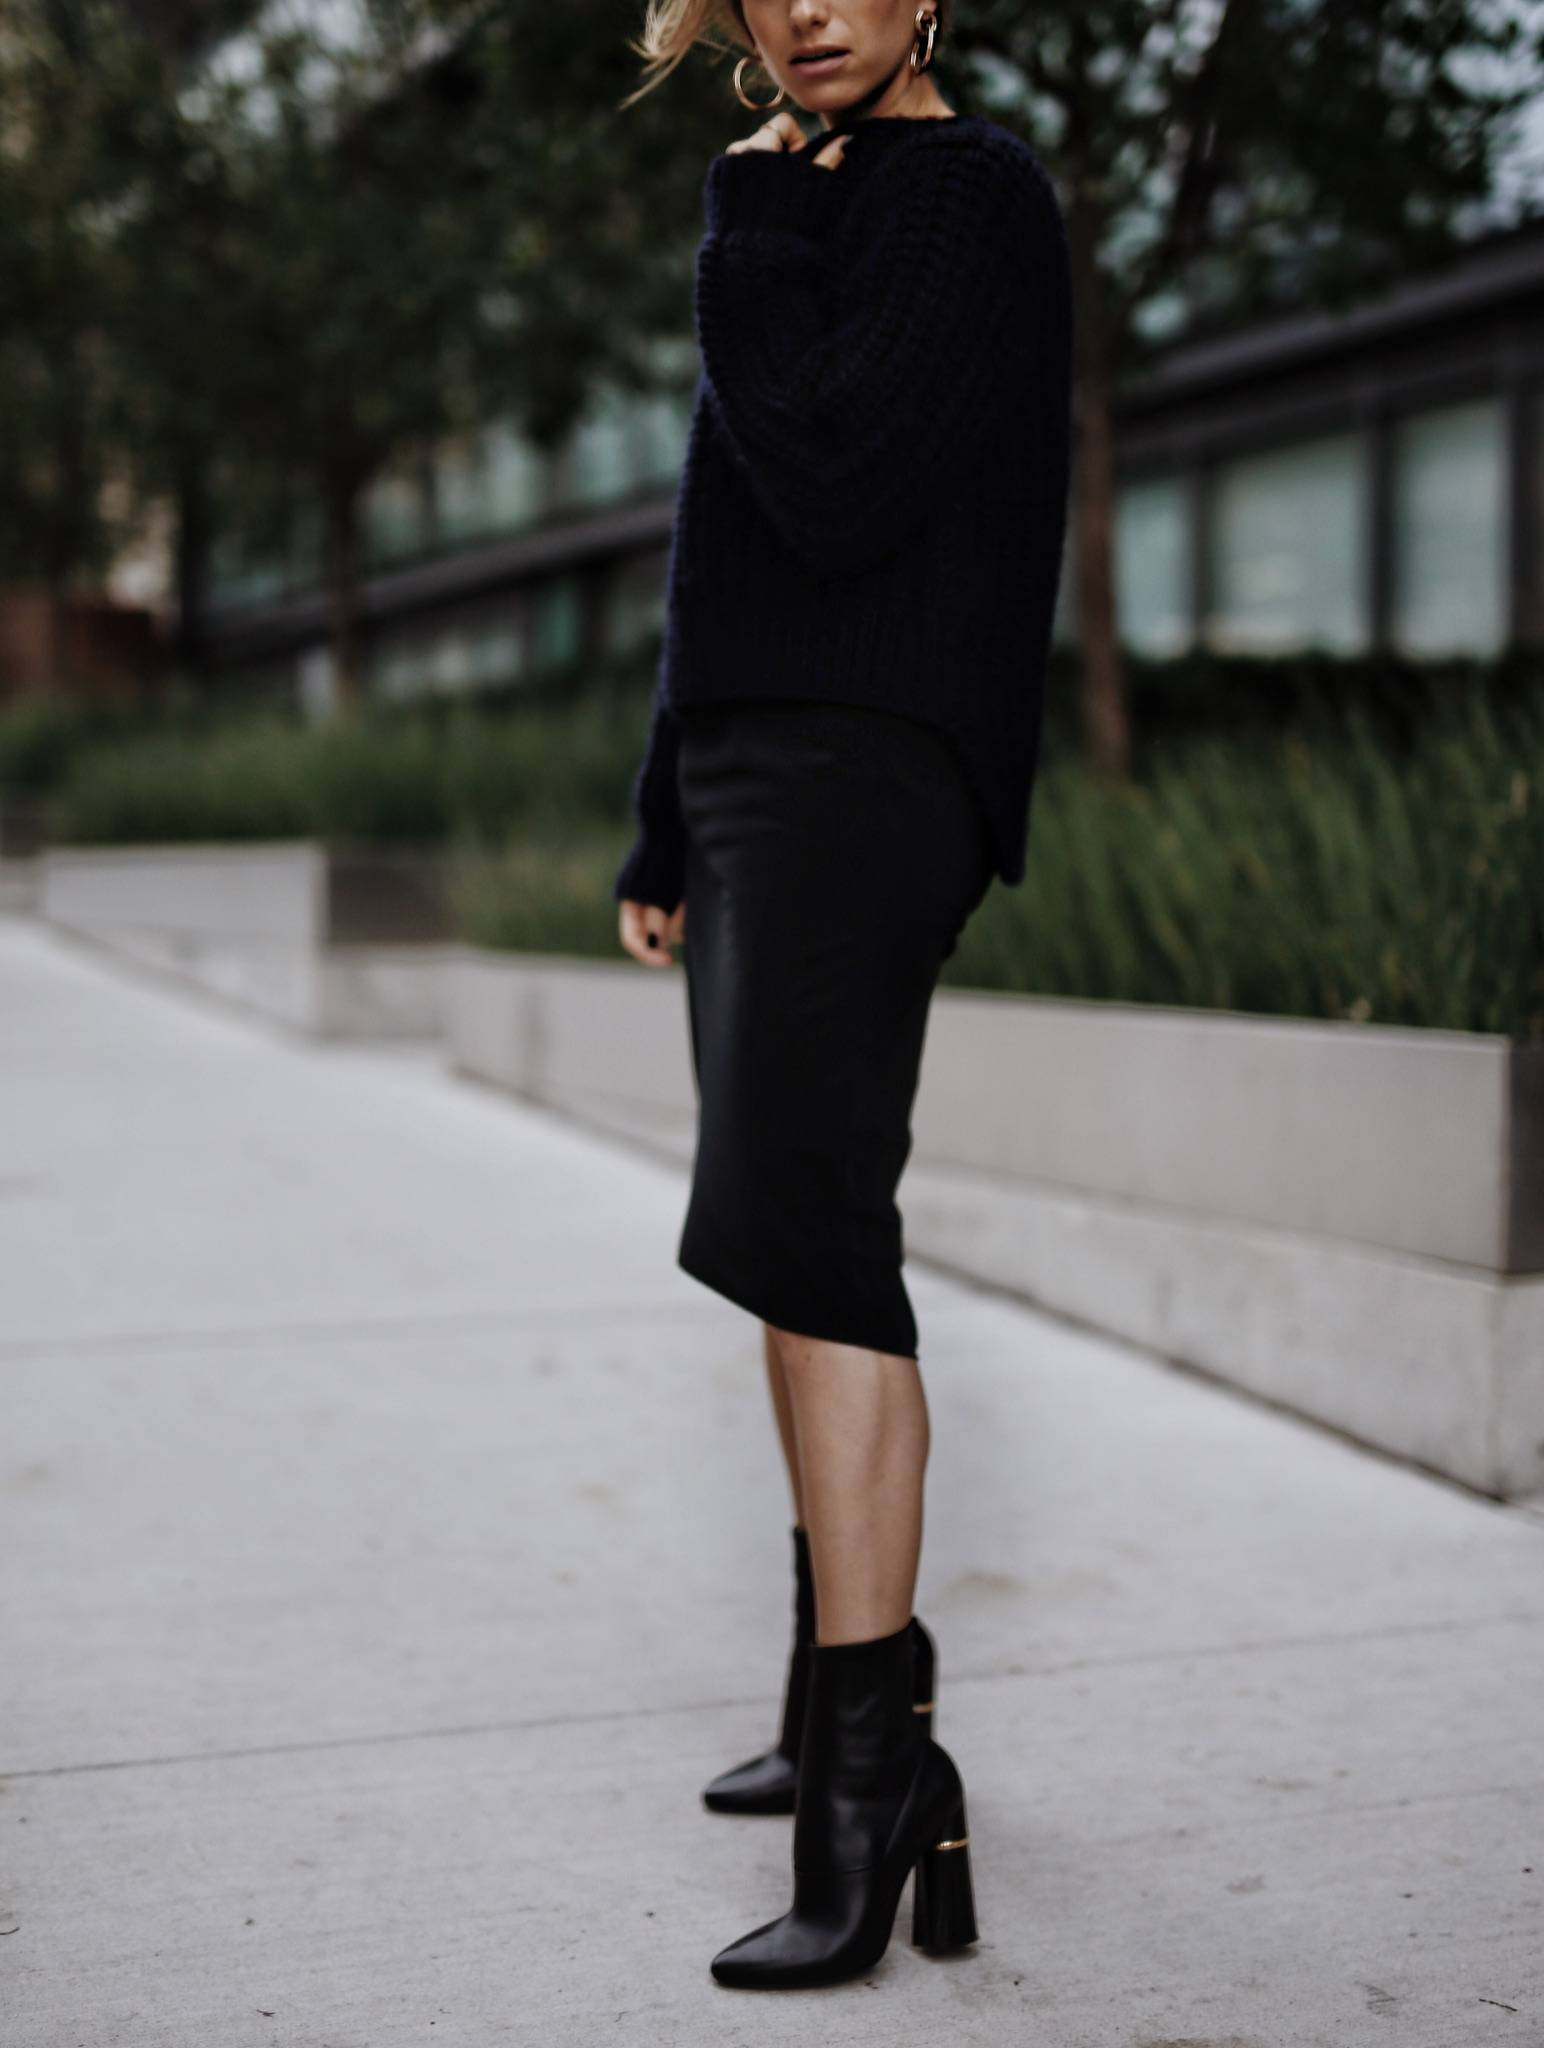 Style and beauty blogger Jill Lansky of The August Diaries shows how to wear black and navy together in a black slip dress and navy sweater with 3.1 Phillip Lim Kyoto boots